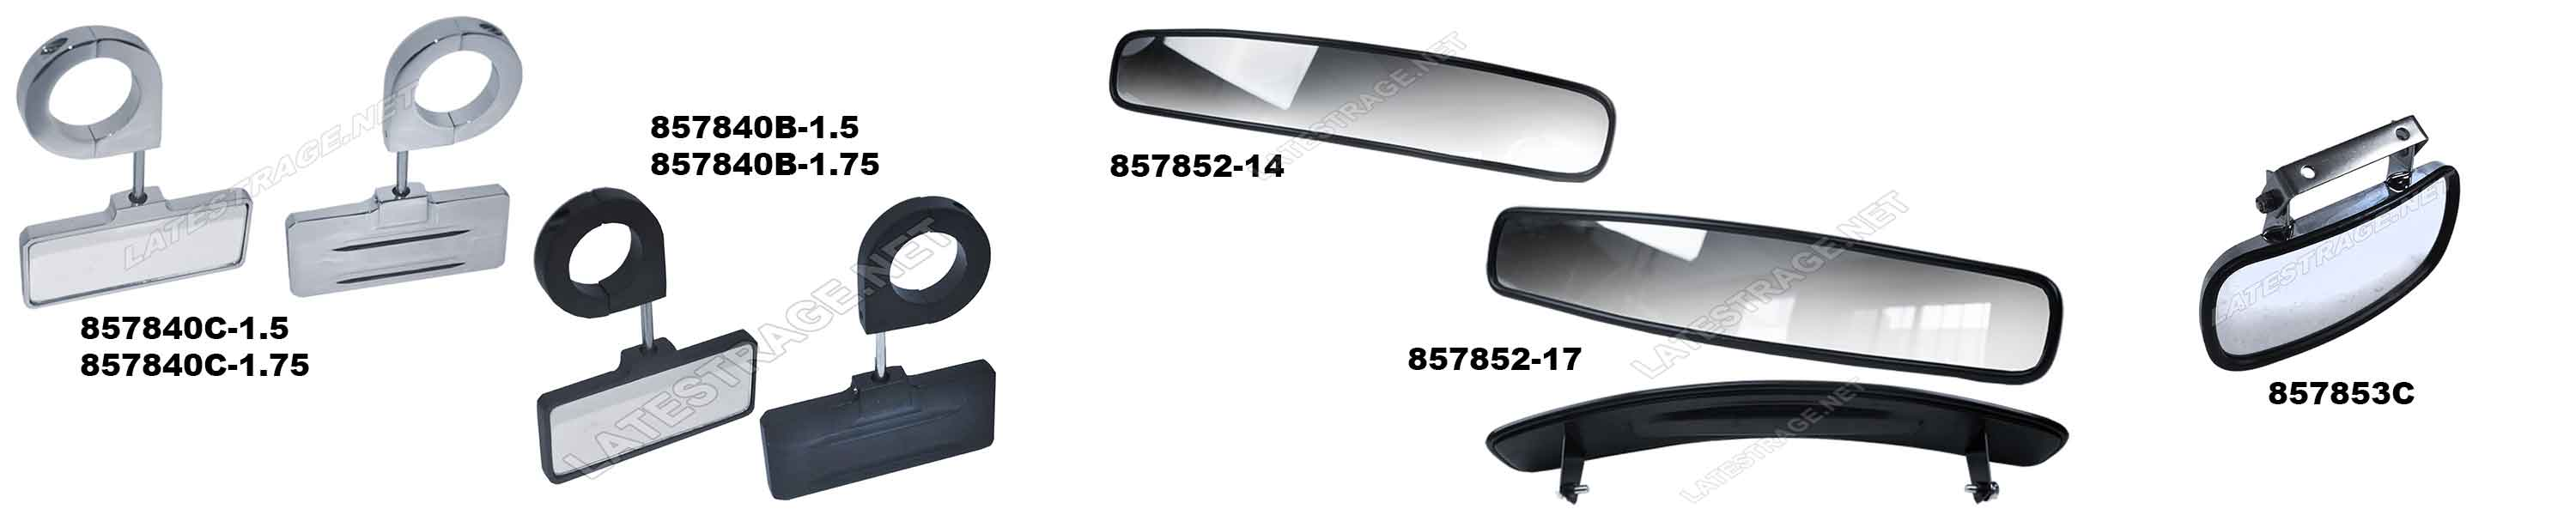 REARVIEW_MIRRORS_5508ba8320526.jpg